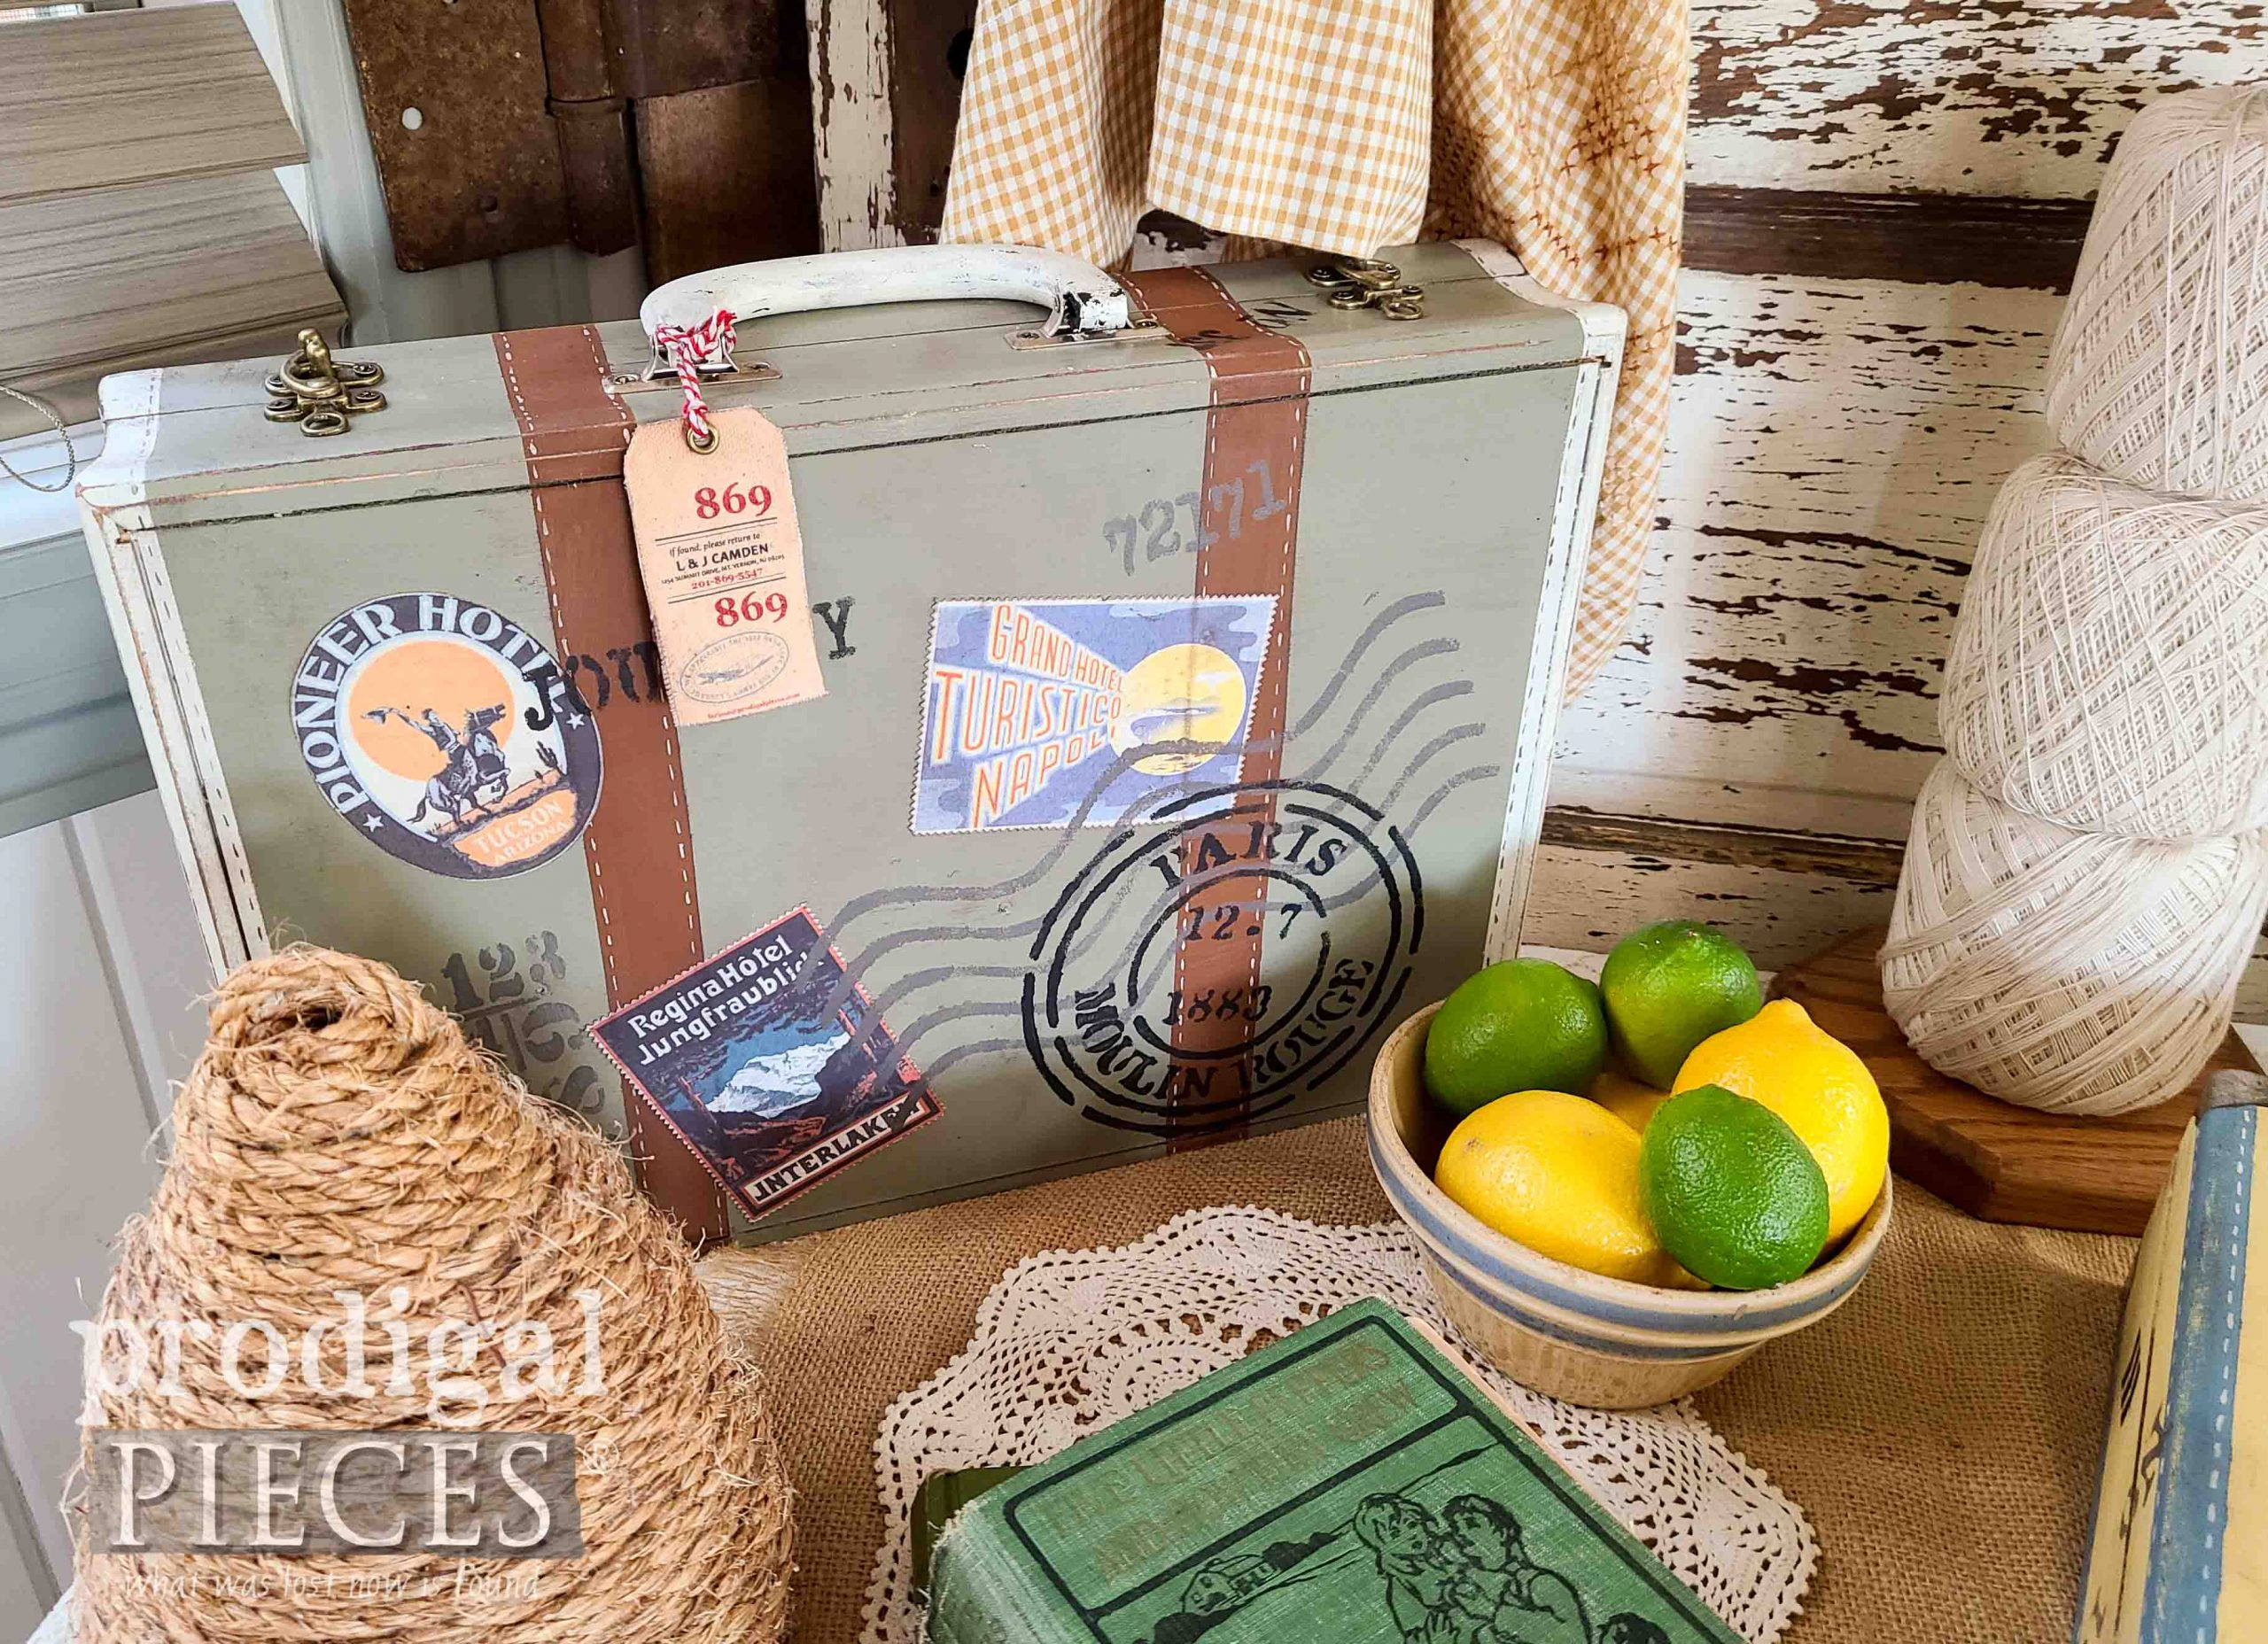 Green Vintage Style Suitcase from Repurposed Silverware Box by Larissa of Prodigal Pieces | prodigalpieces.com #prodigalpieces #diy #home #homedecor